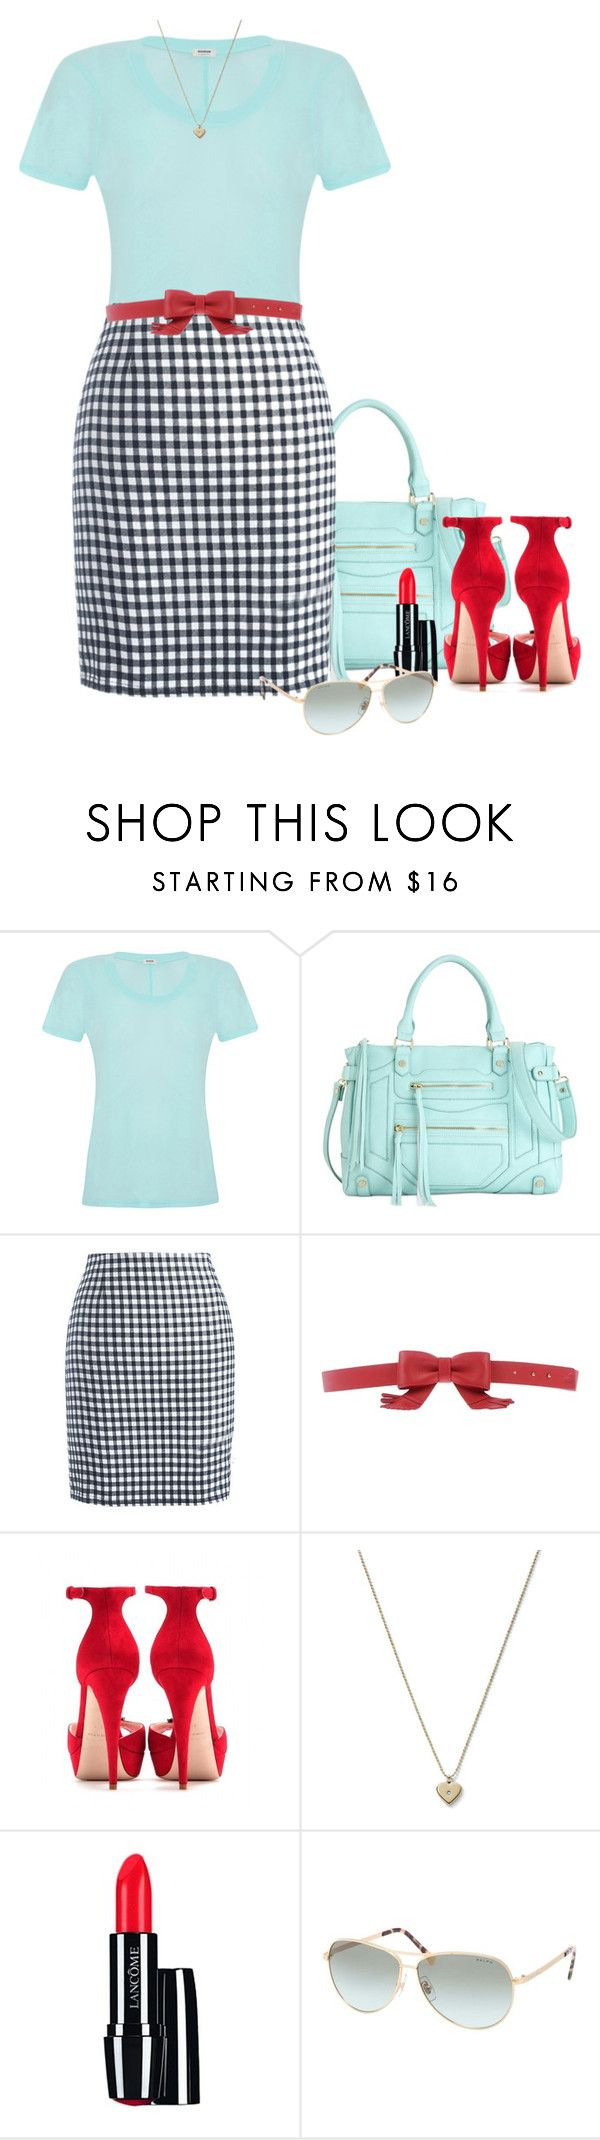 """Tiffany Blue Tops"" by melissa-chung-pnklmnade ❤ liked on Polyvore featuring Monrow, Steve Madden, Chicnova Fashion, Love Moschino, Miu Miu, Michael Kors, Lancôme and Ralph by Ralph Lauren"